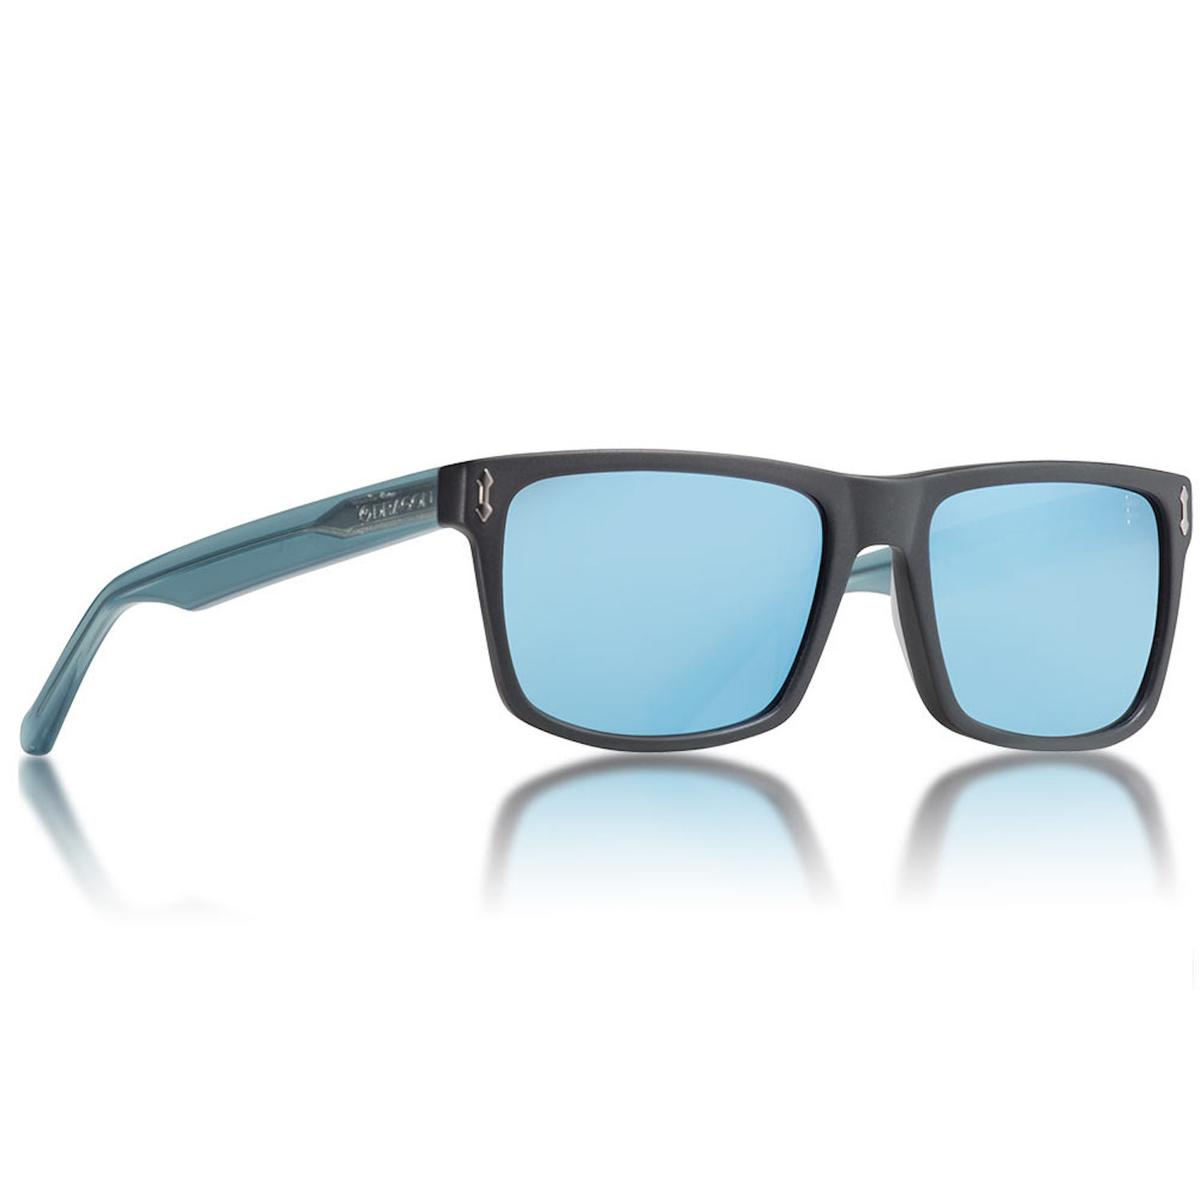 Dragon Blindside Men's Sunglasses